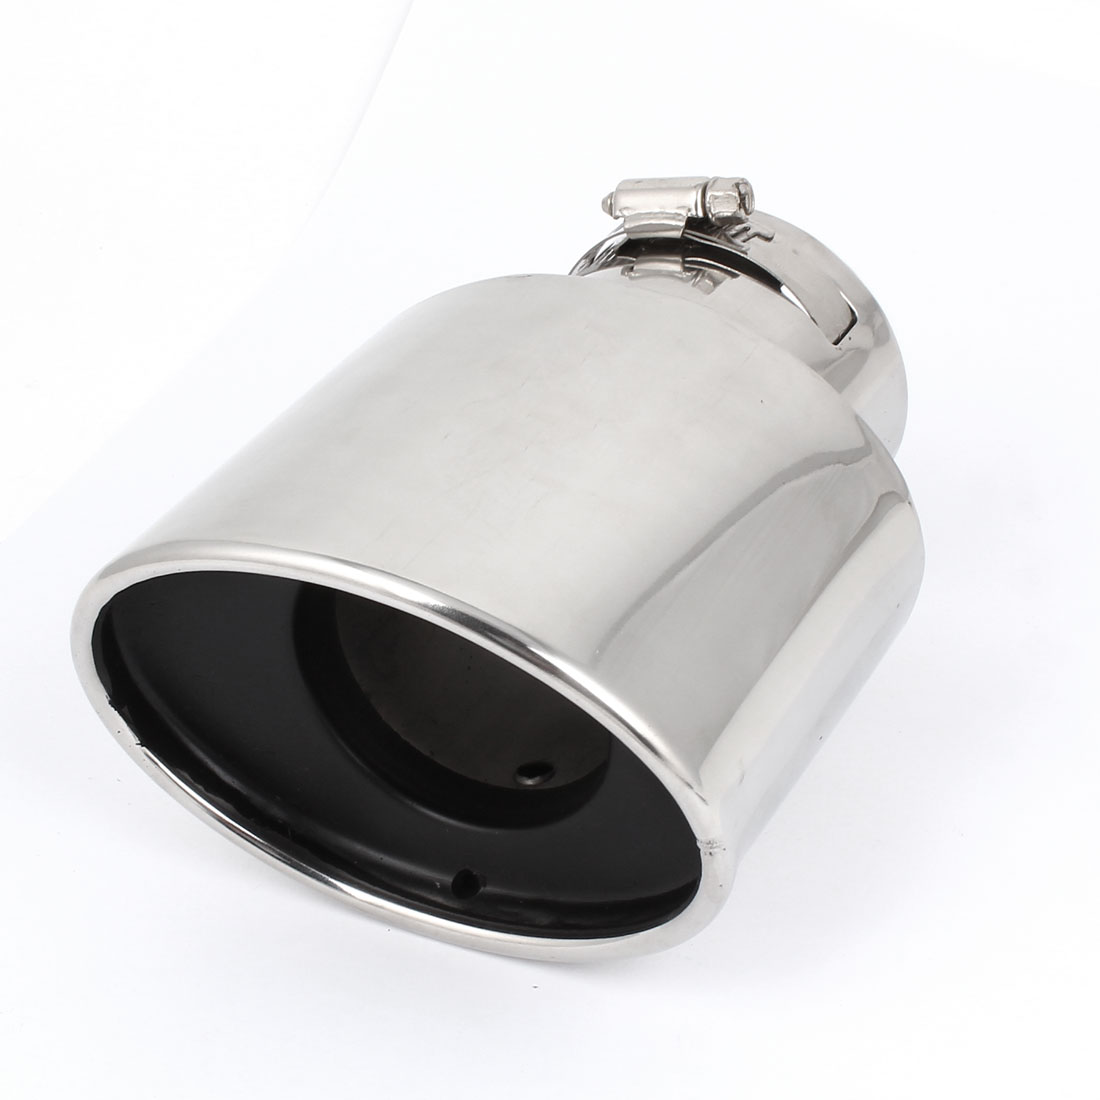 Car Silver Tone 75mm Dia Angle Cut Slanted Exhaust Muffler Silencer Tip Pipe for Honda CRV